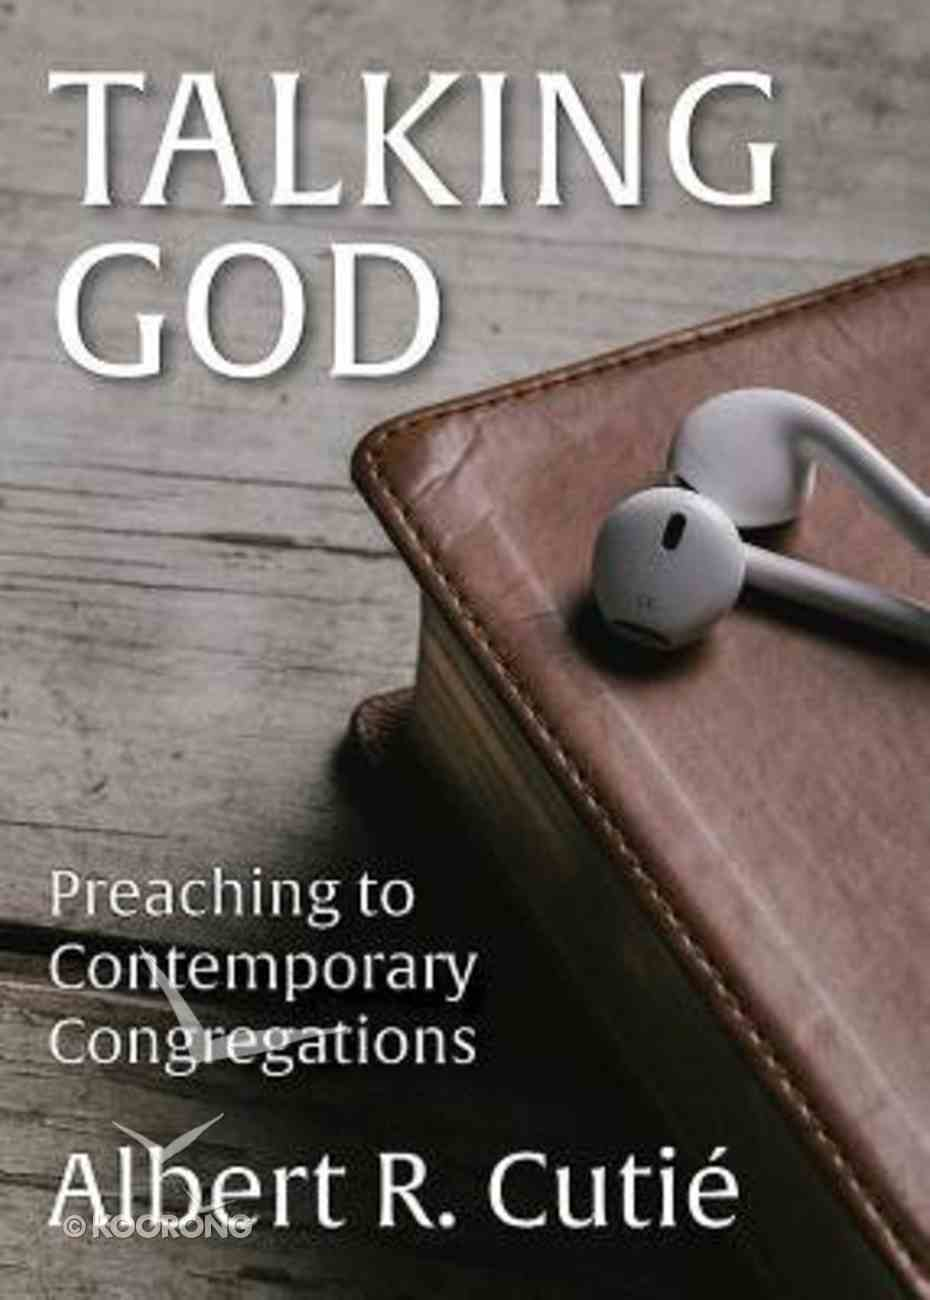 Talking God: Preaching to Contemporary Congregations Paperback